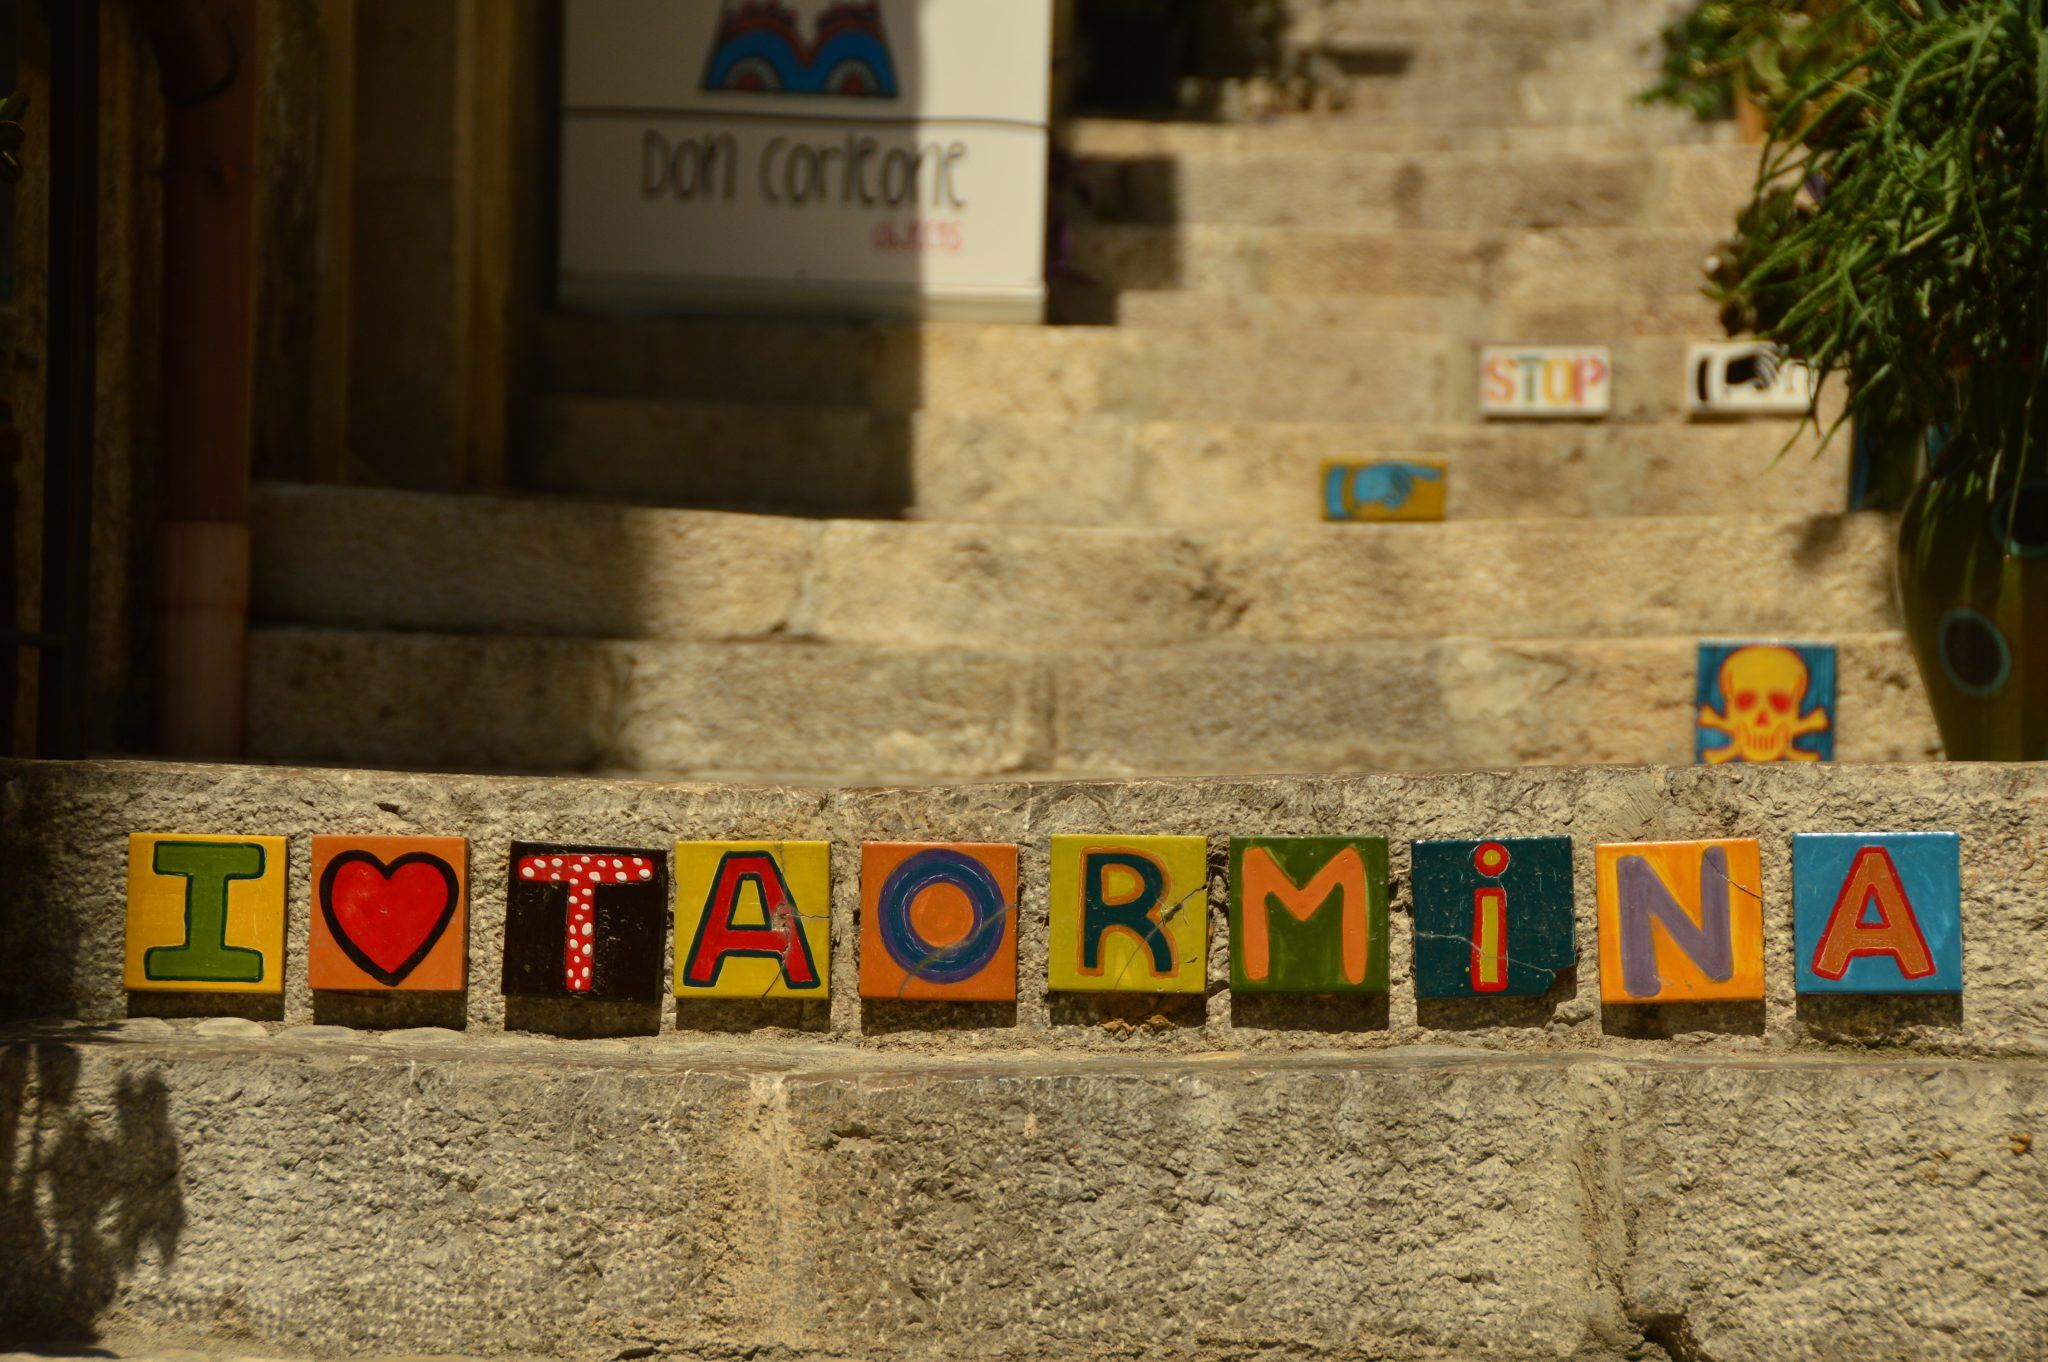 tiles spelling out I love taormina on steps